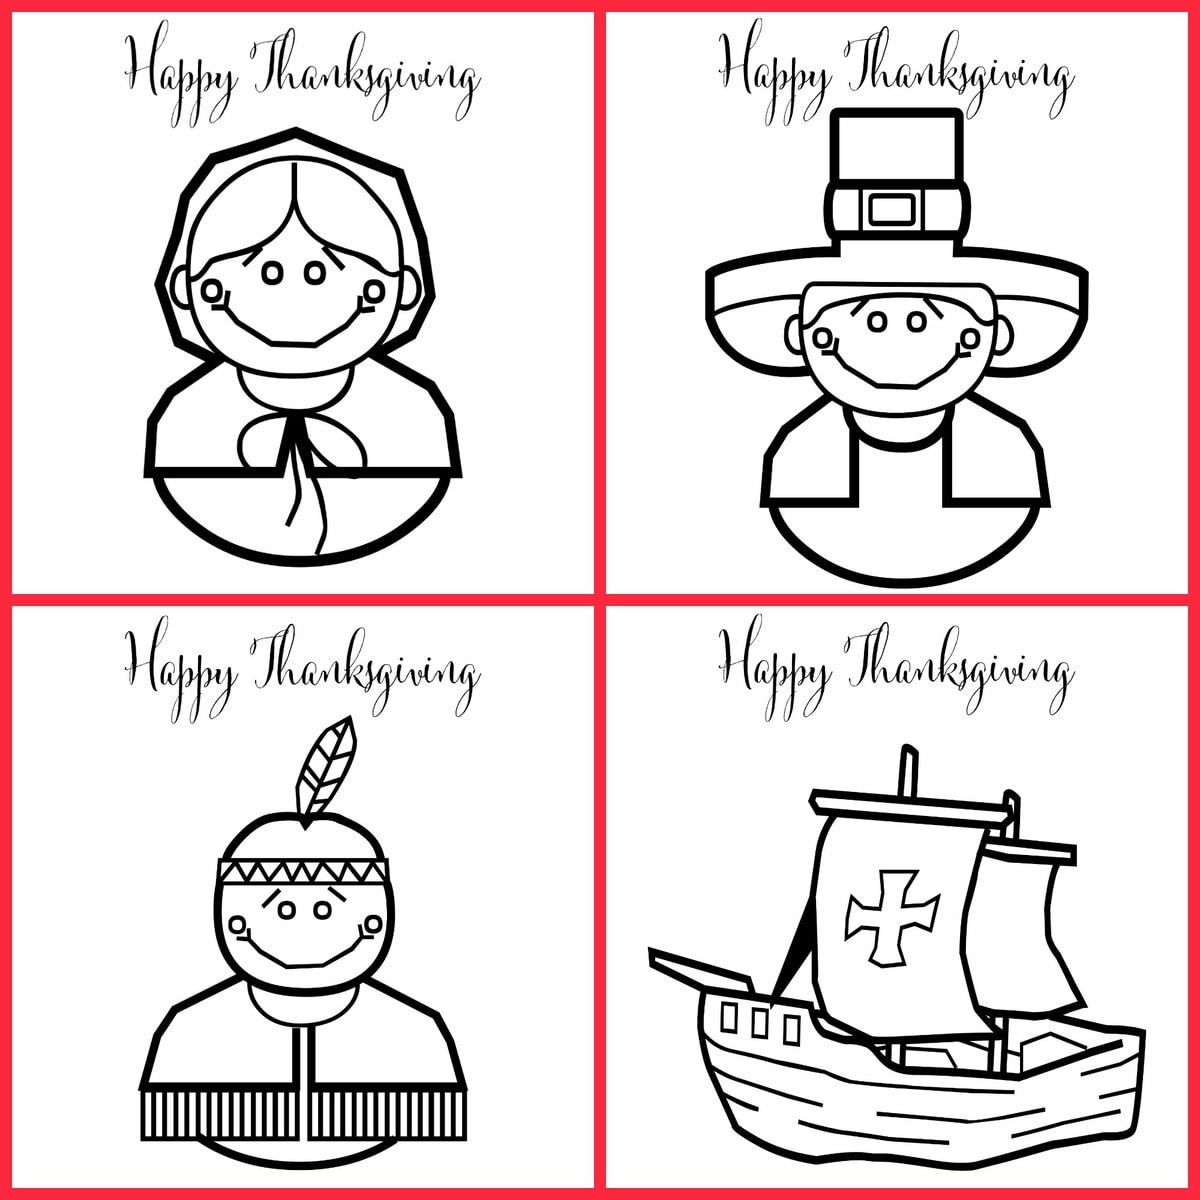 FREE Printable Thanksgiving Coloring Pages | Lil\' Luna